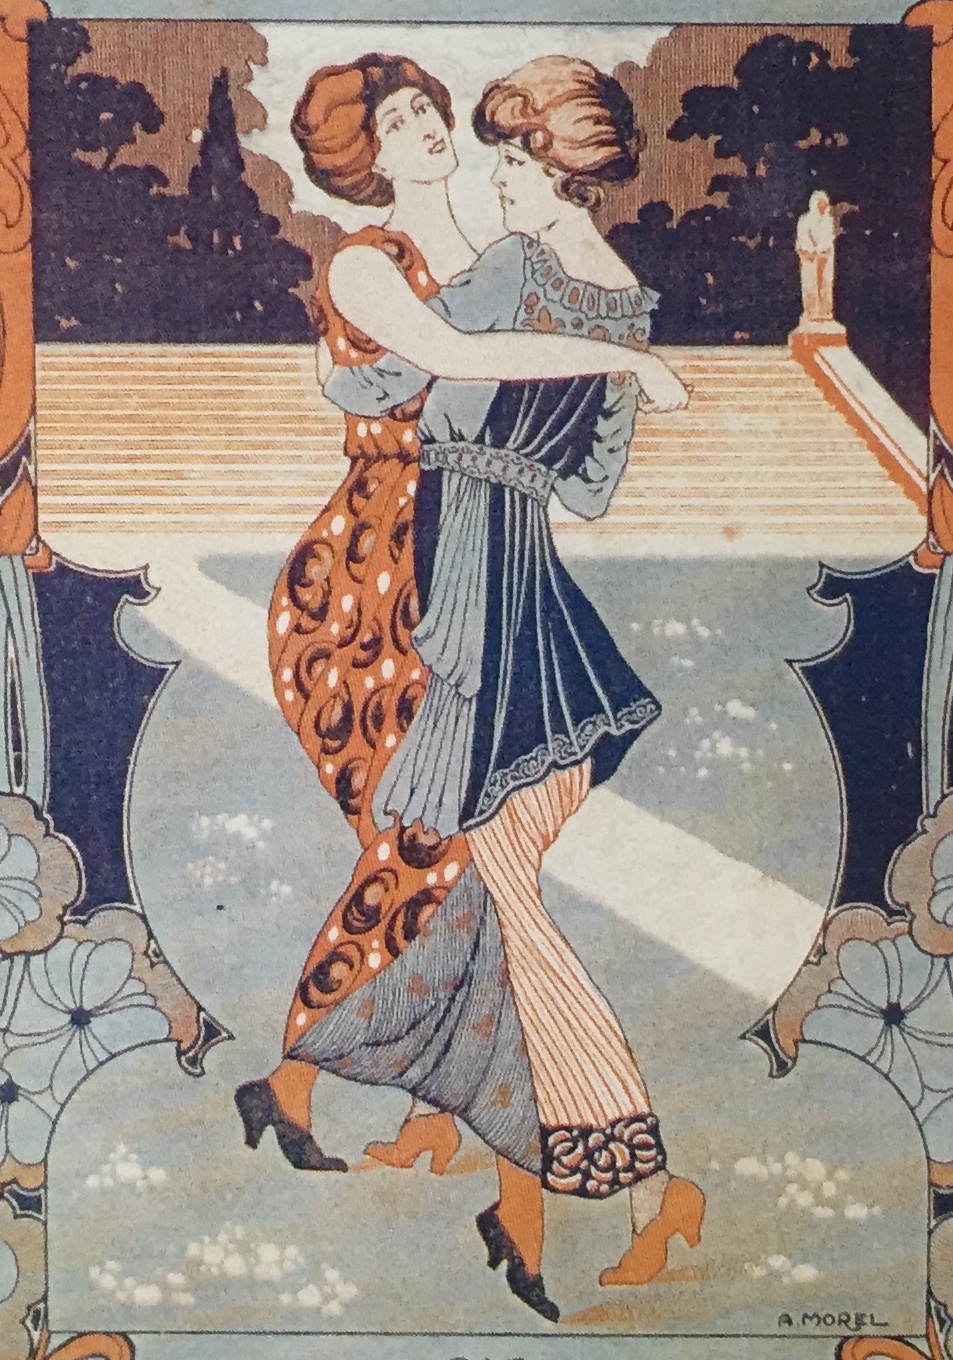 Fashionable women on Villoldo sheet music, London and Paris, 1913-14